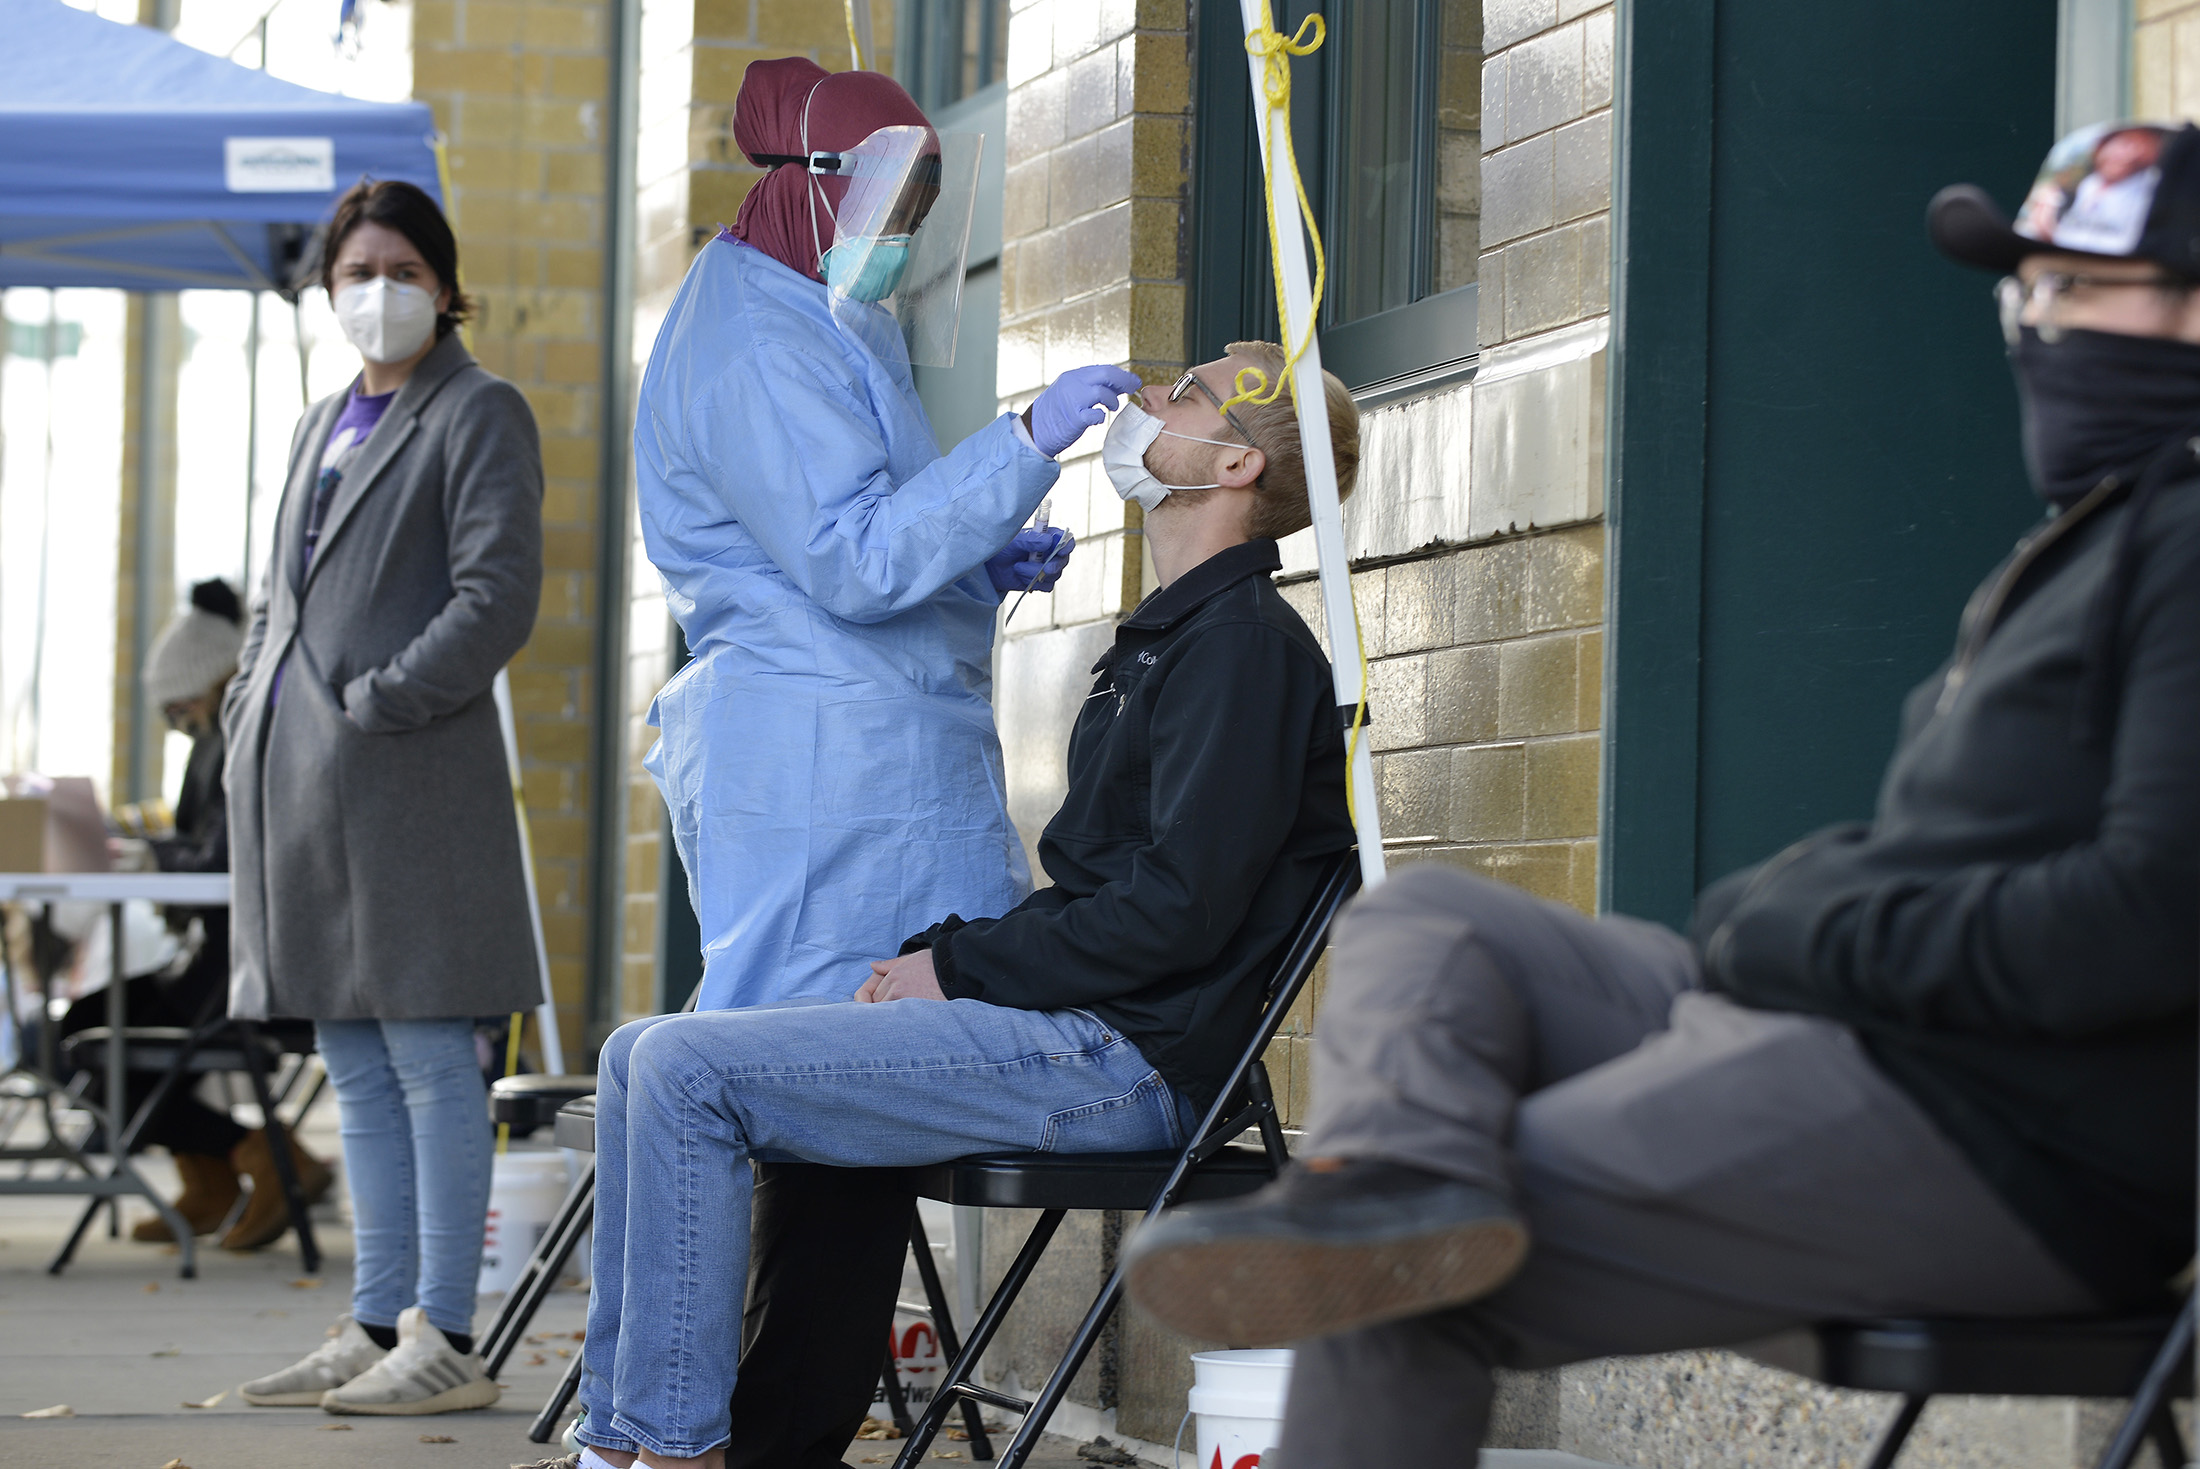 A medical staff member performs a Covid-19 test in Fargo, North Dakota, on Thursday, October 15, 2020.